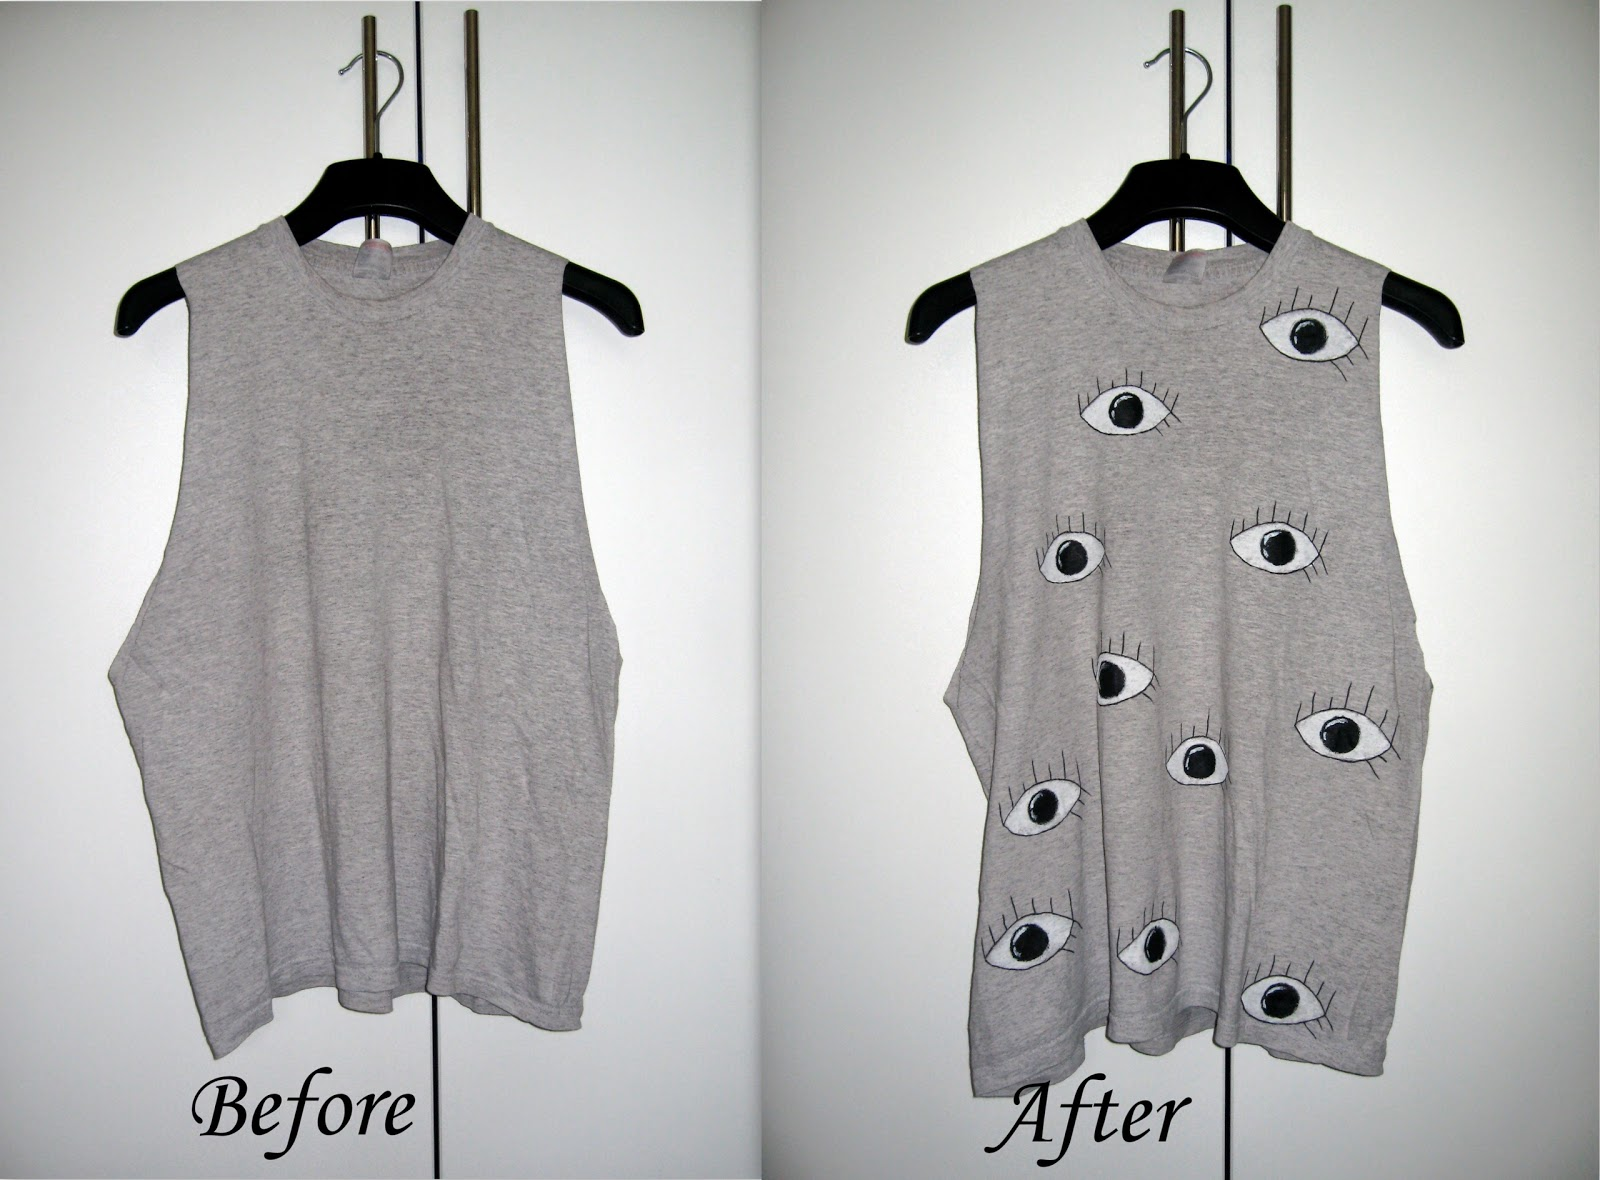 zara eyes print dress, DIY, zara eye print inspired DIY, DIY t shirt tee top, DIY t-shirt with eye print, recycle old t-shirt